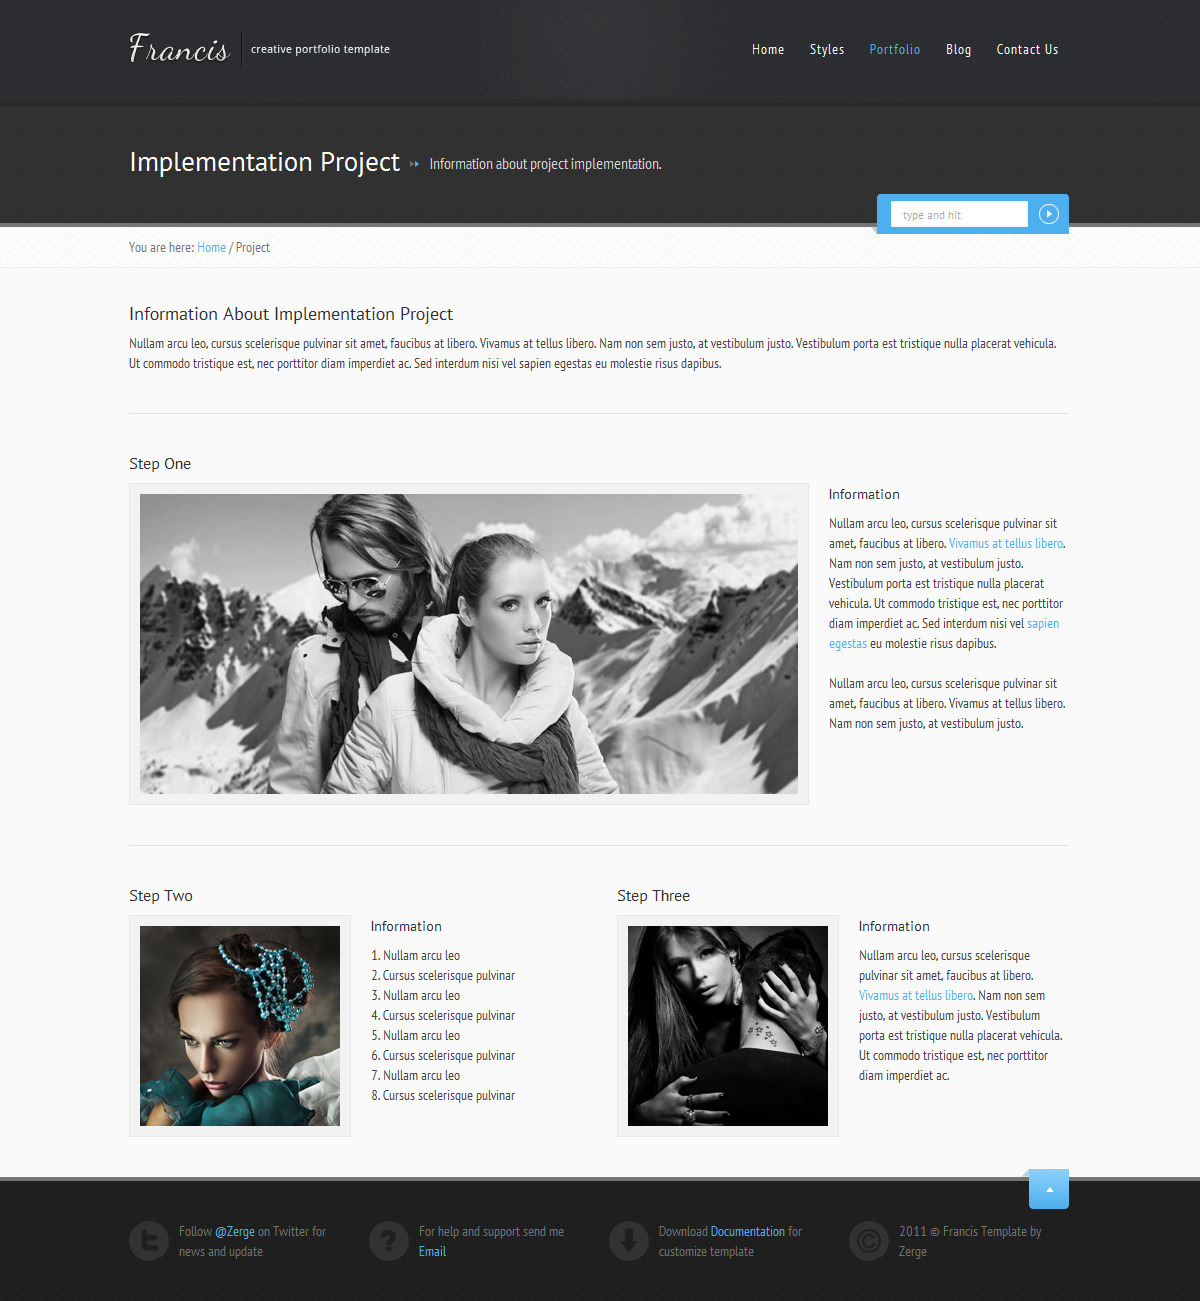 Francis - HTML5 CSS3 Template by ZERGE   ThemeForest